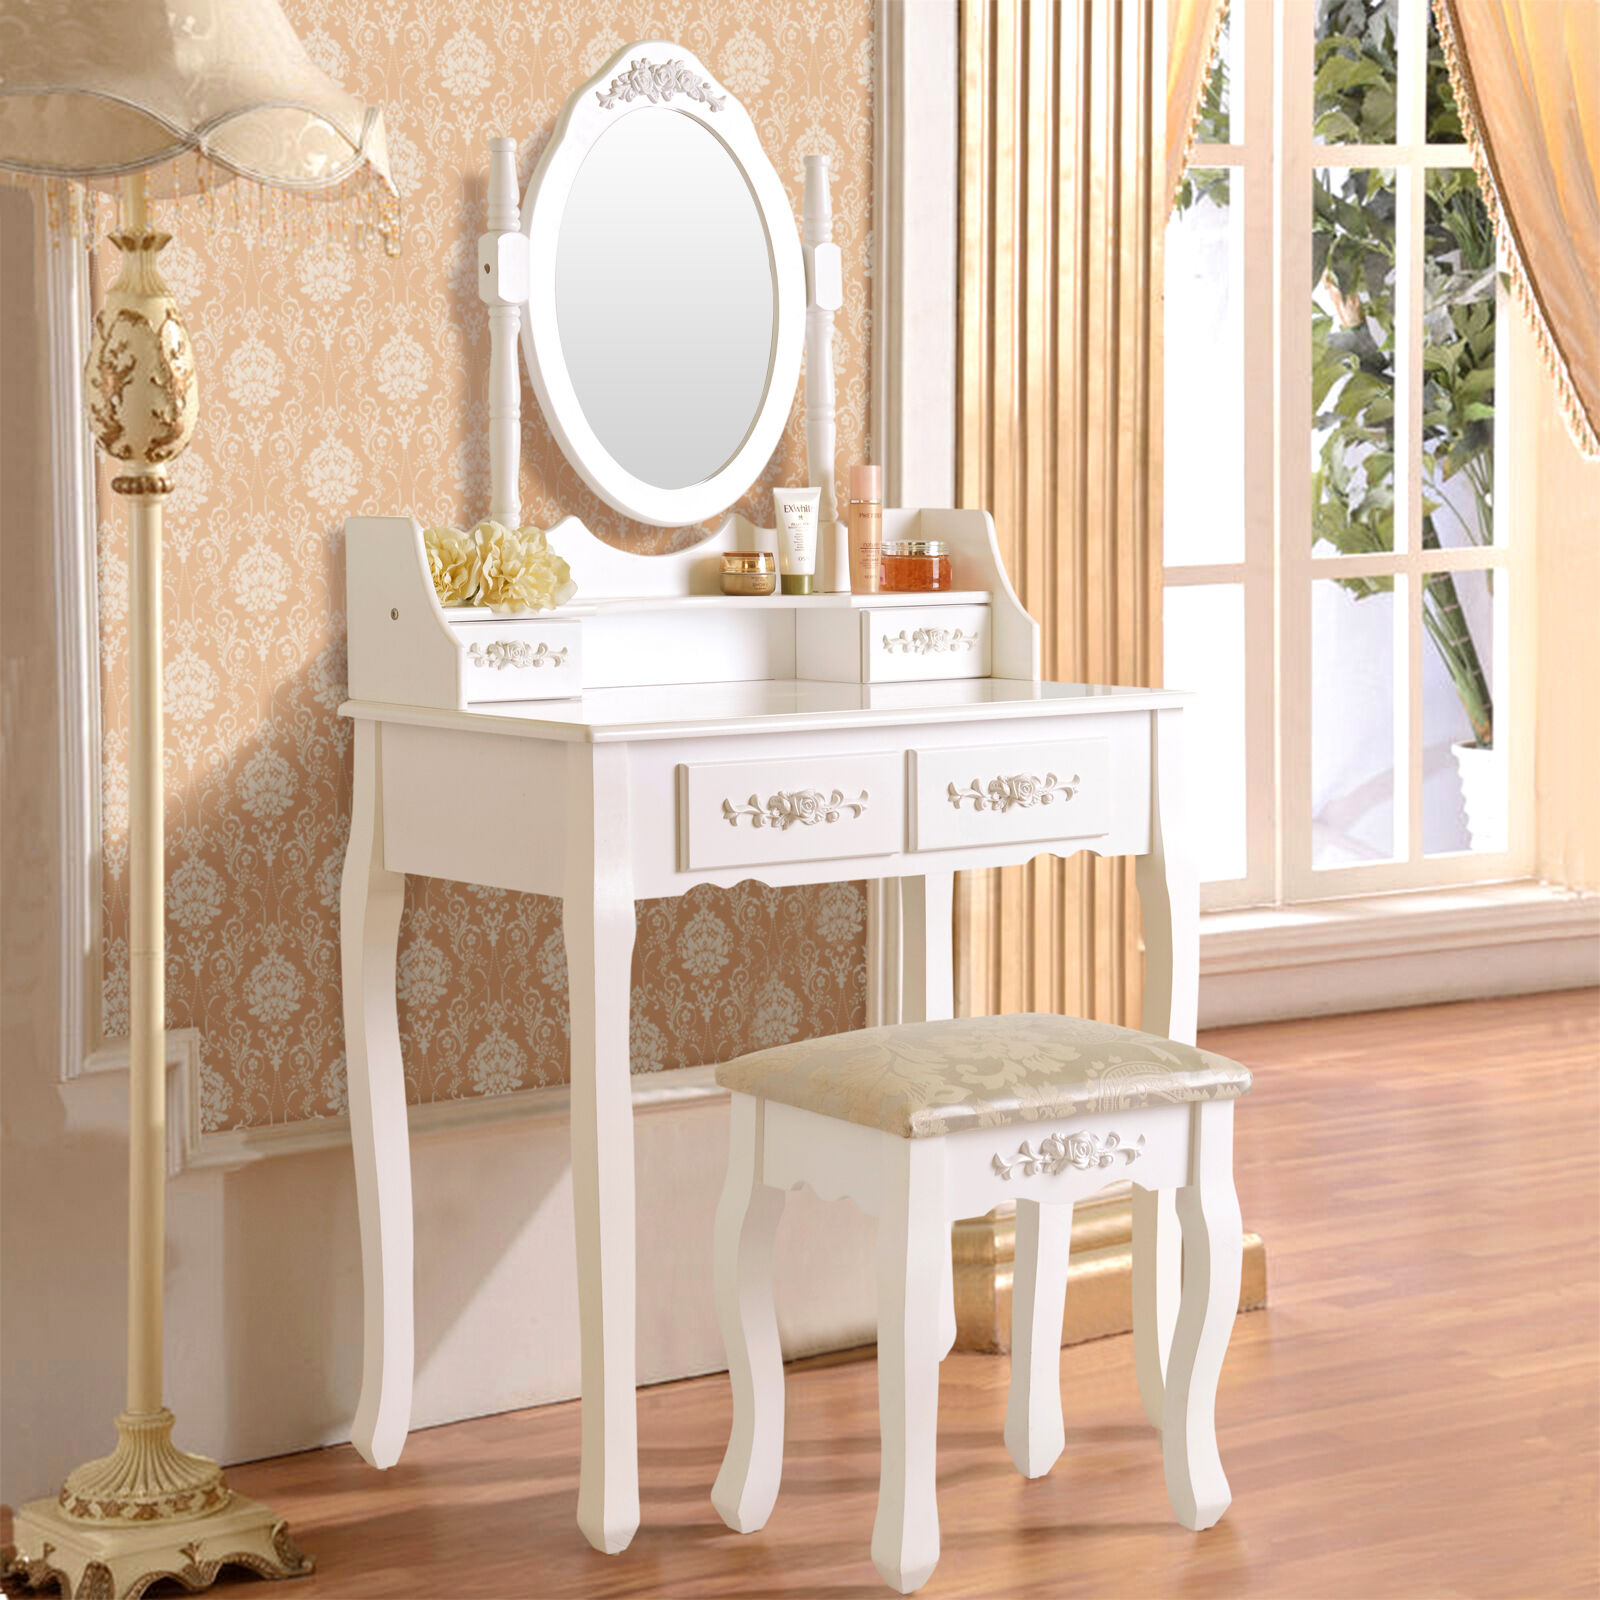 White Vanity Makeup Dressing Table Set with Stool 4 Drawer & Mirror Wood Desk 709202324753 | eBay